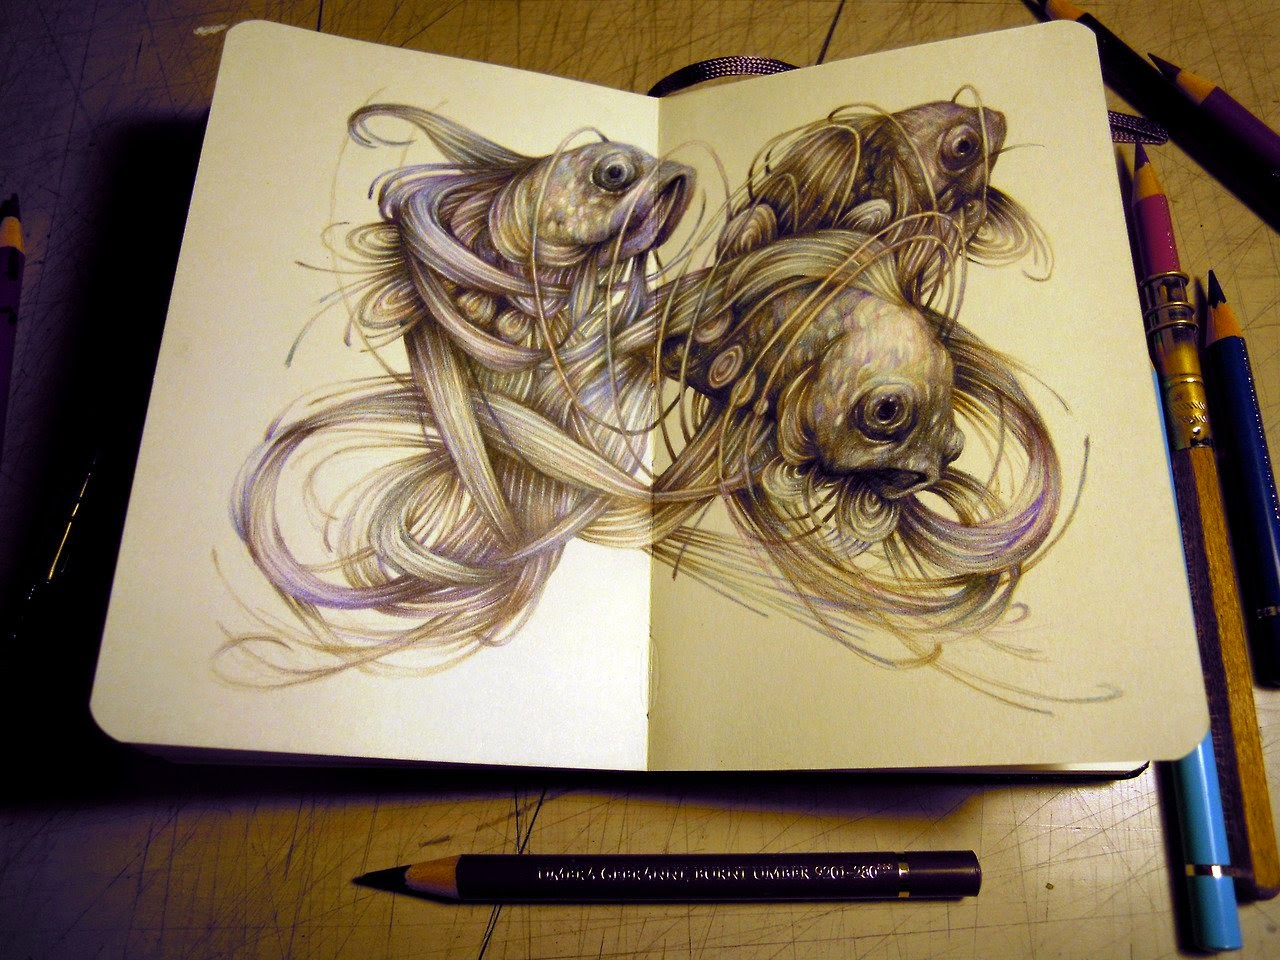 21-Marco-Mazzoni-Surreal-Animal-Drawings-www-designstack-co